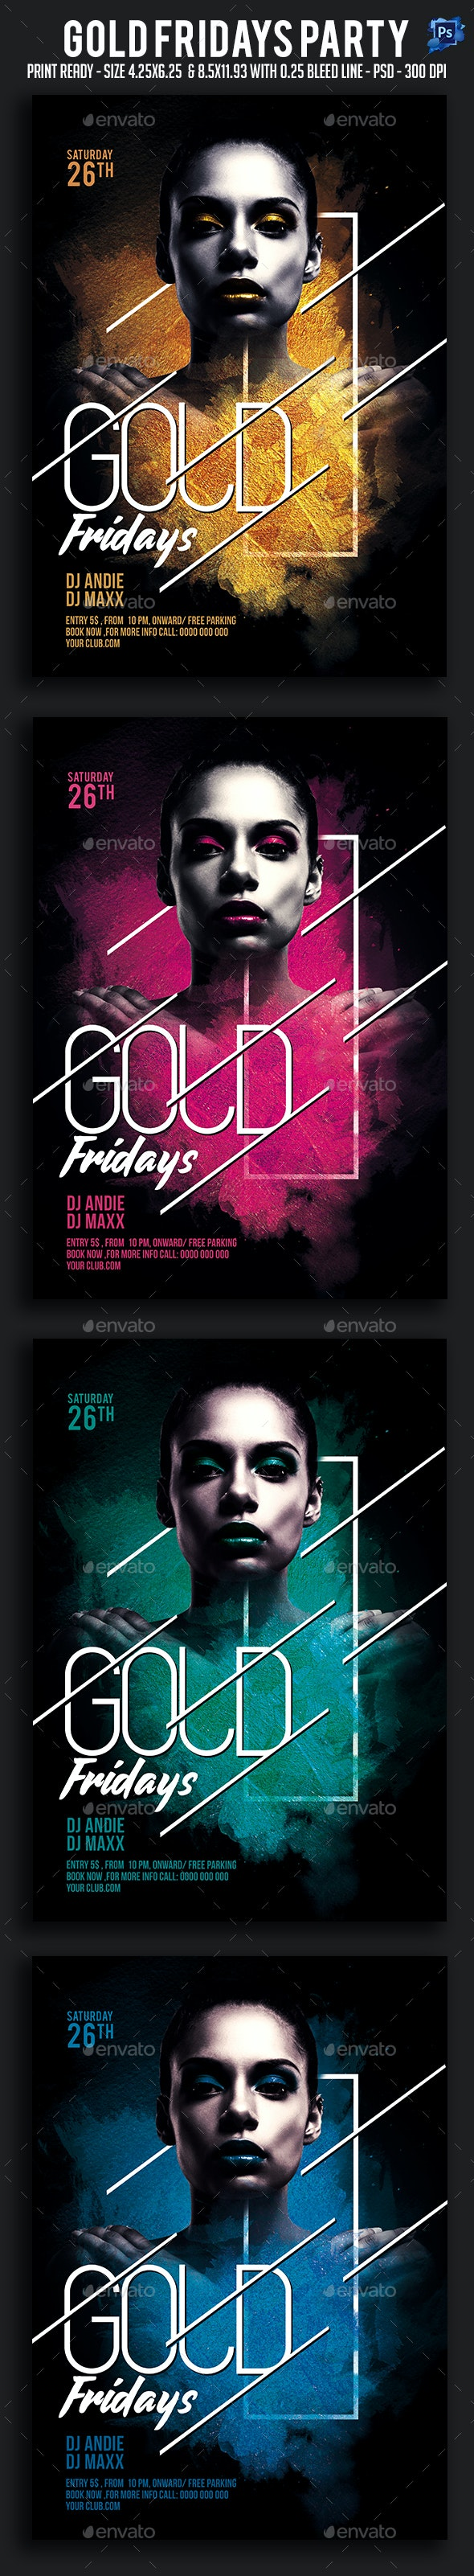 Gold Fridays Party Flyer - Clubs & Parties Events